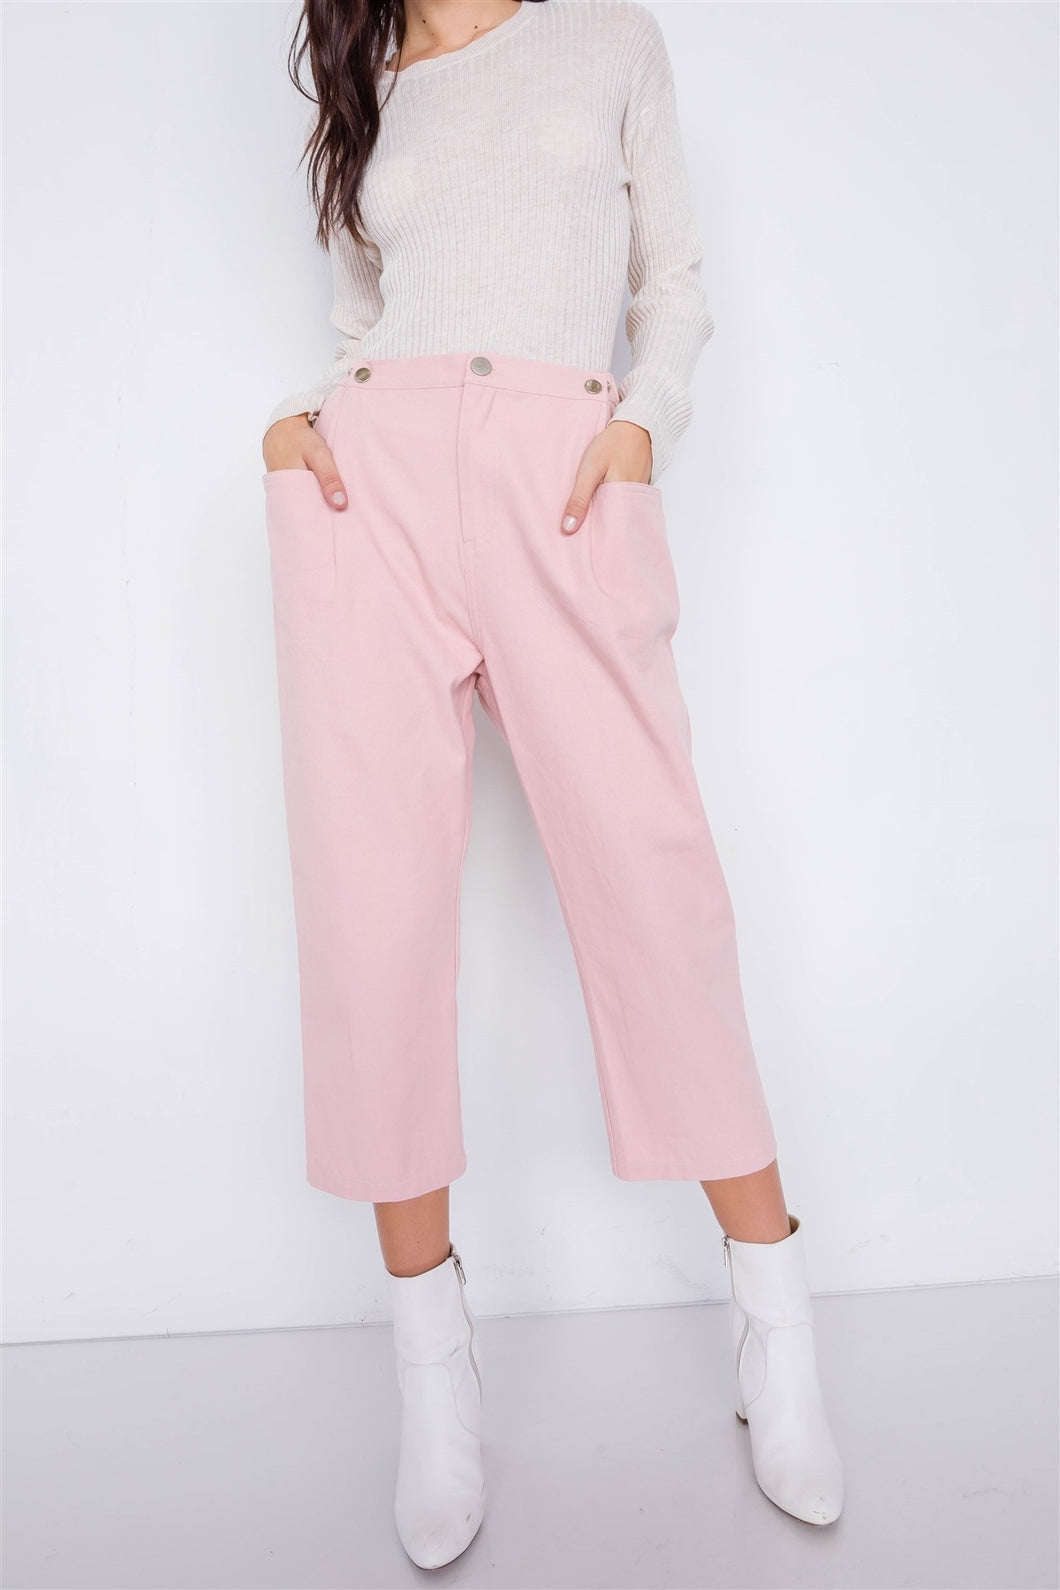 Pastel Chic Solid Ankle Wide Leg Adjustable Snap Waist Pants - Shopninaruchi